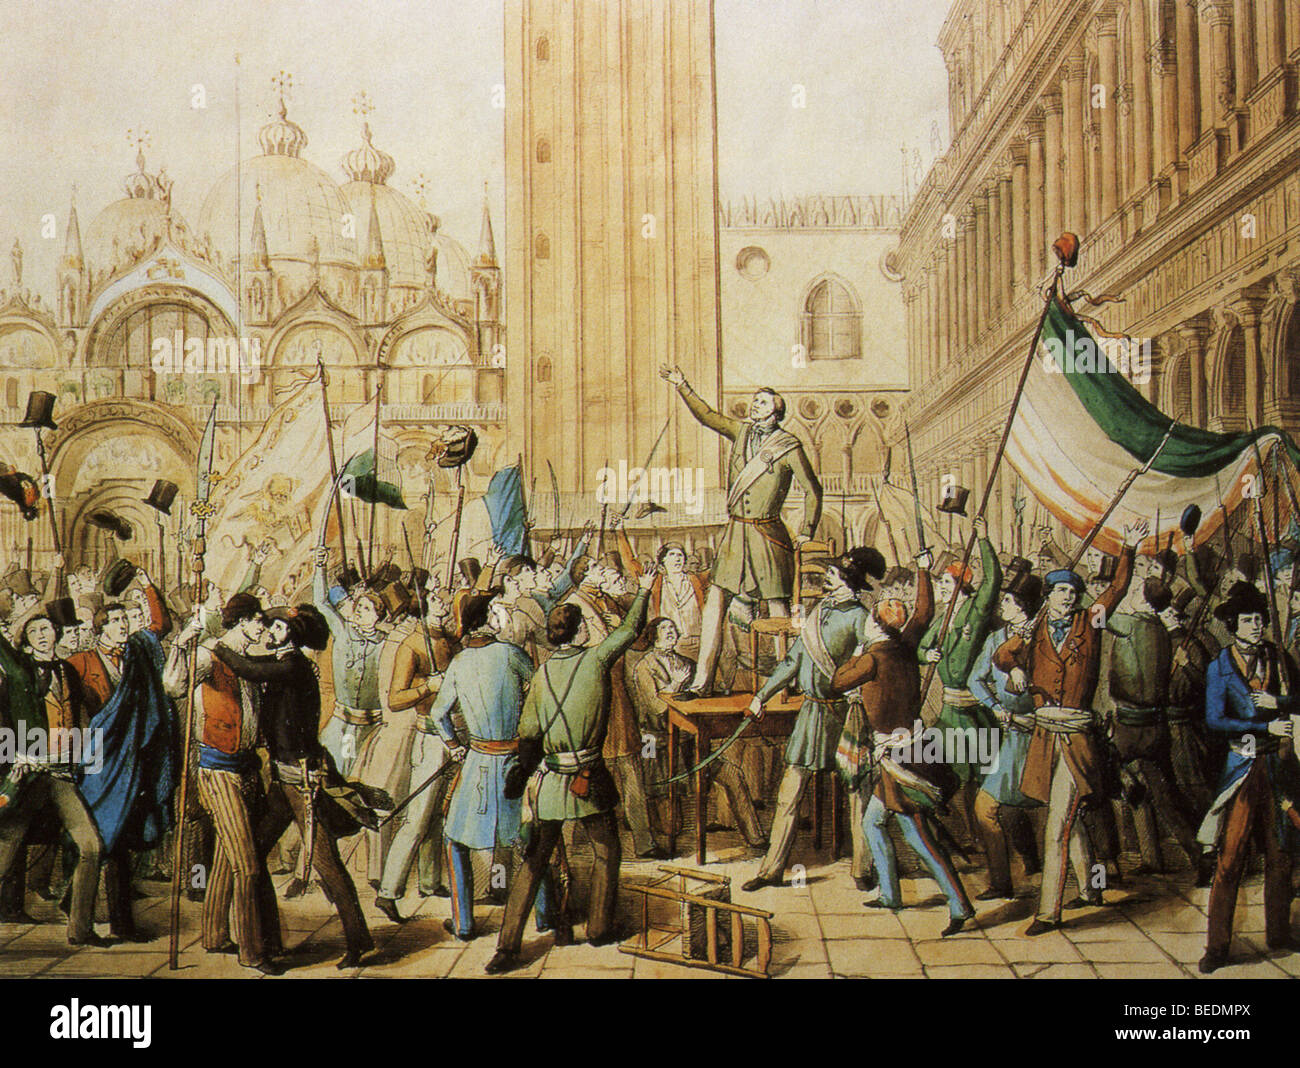 VENETIAN REPUBLIC is proclaimed in St Mark's Square on 23 March 1848 freeing the Venetians from the Austro-Hungarian - Stock Image